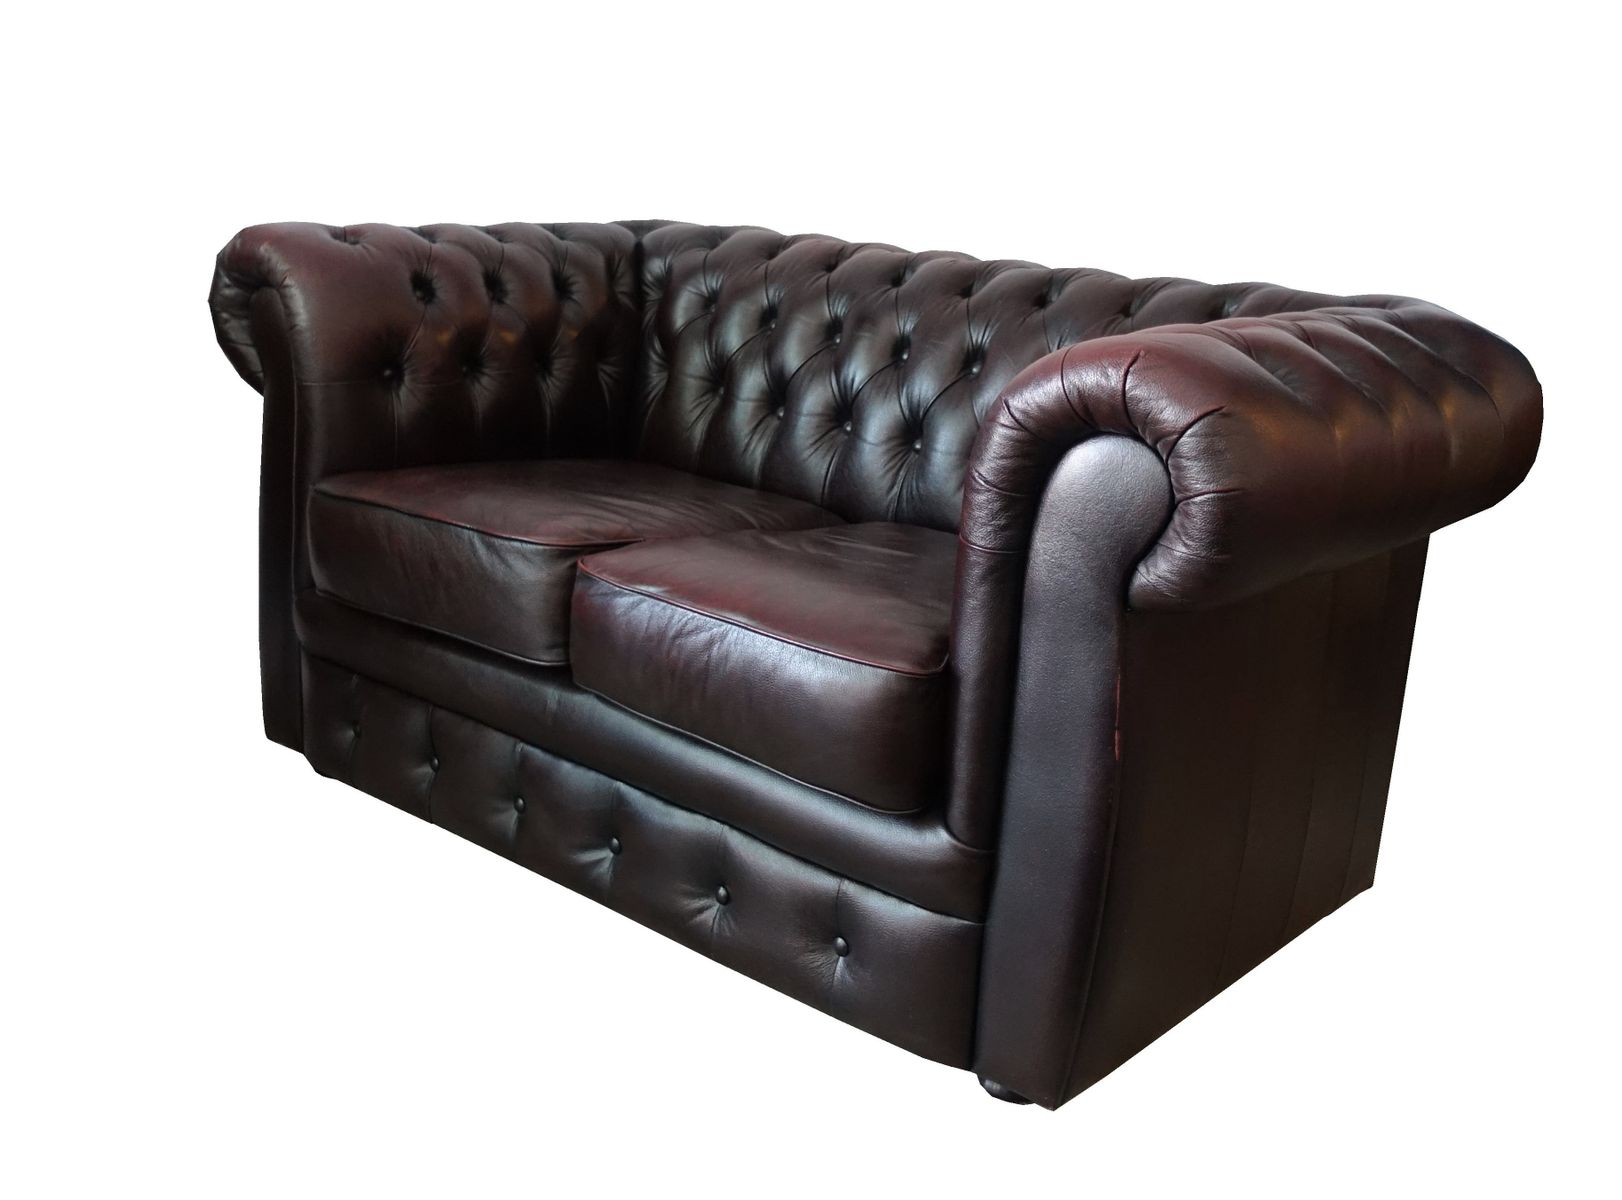 Vintage Chesterfield Quilted Leather Sofa for sale at Pamono